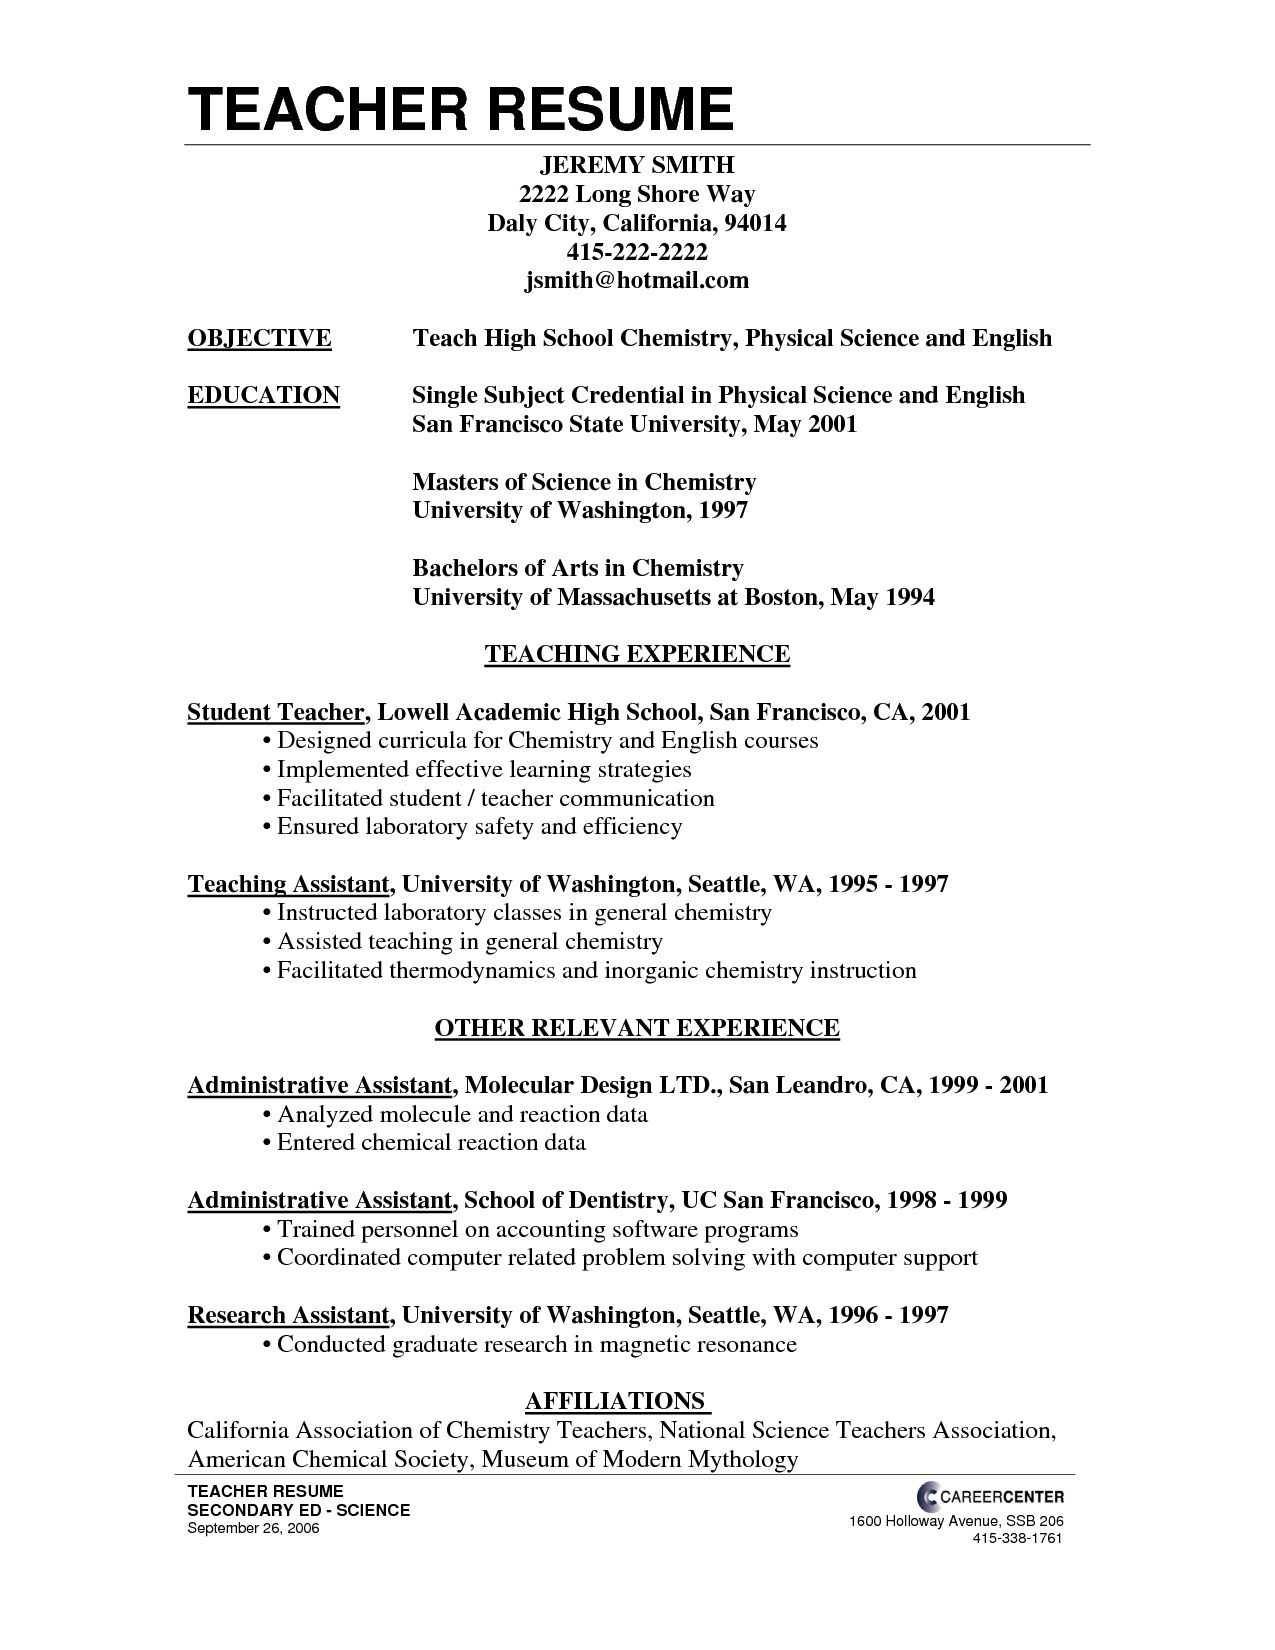 High school teacher resume for Sample resume for art and craft teacher